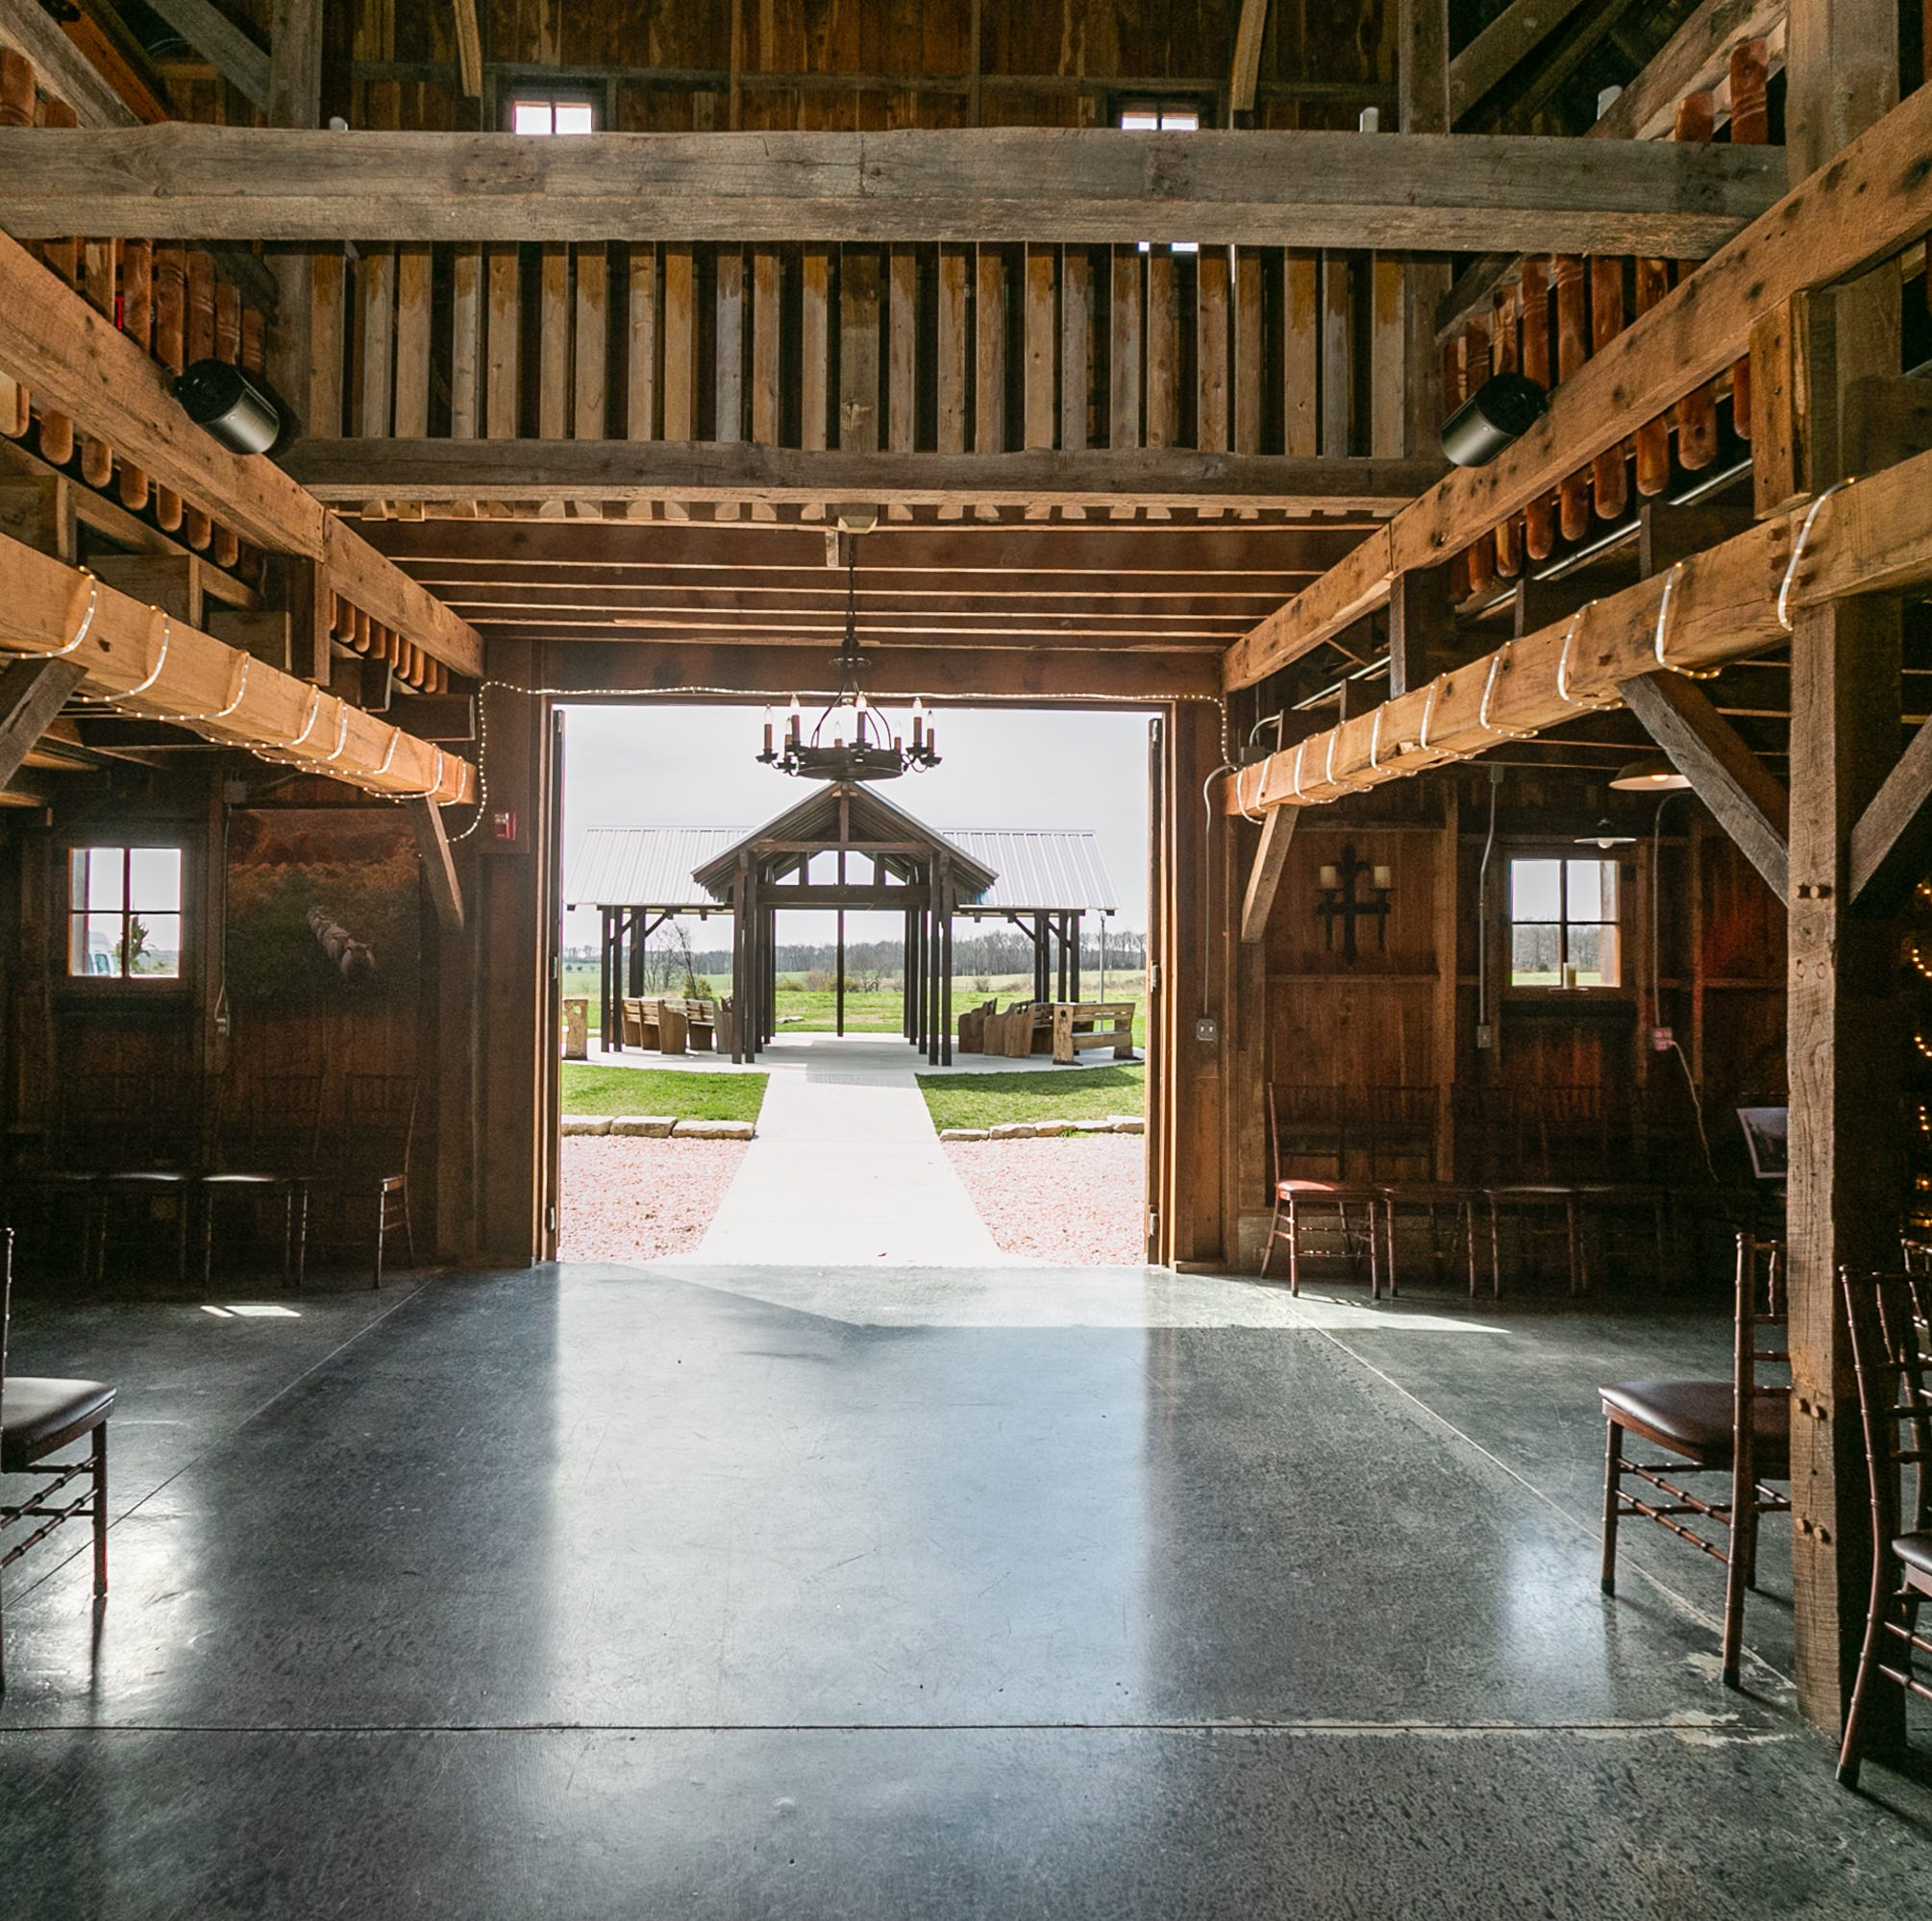 Storybook Barn nails the 'rustic elegance' vibe